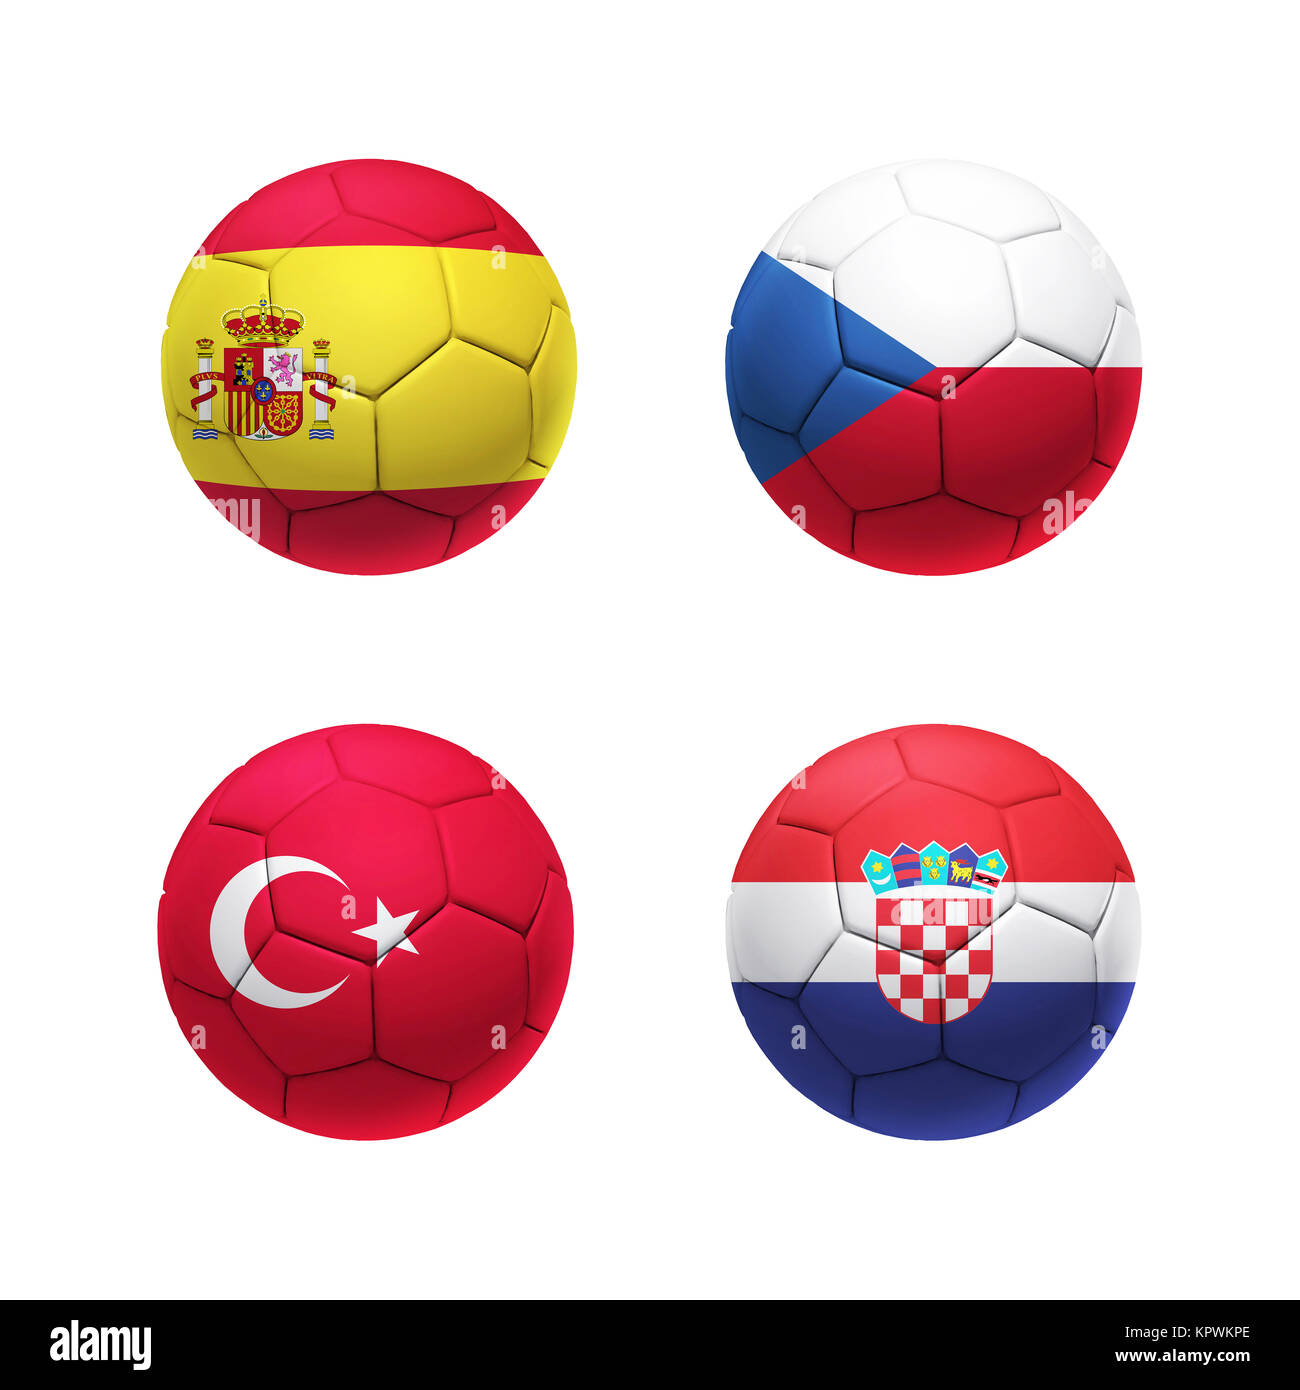 3D soccer ball with group D teams flags - Stock Image